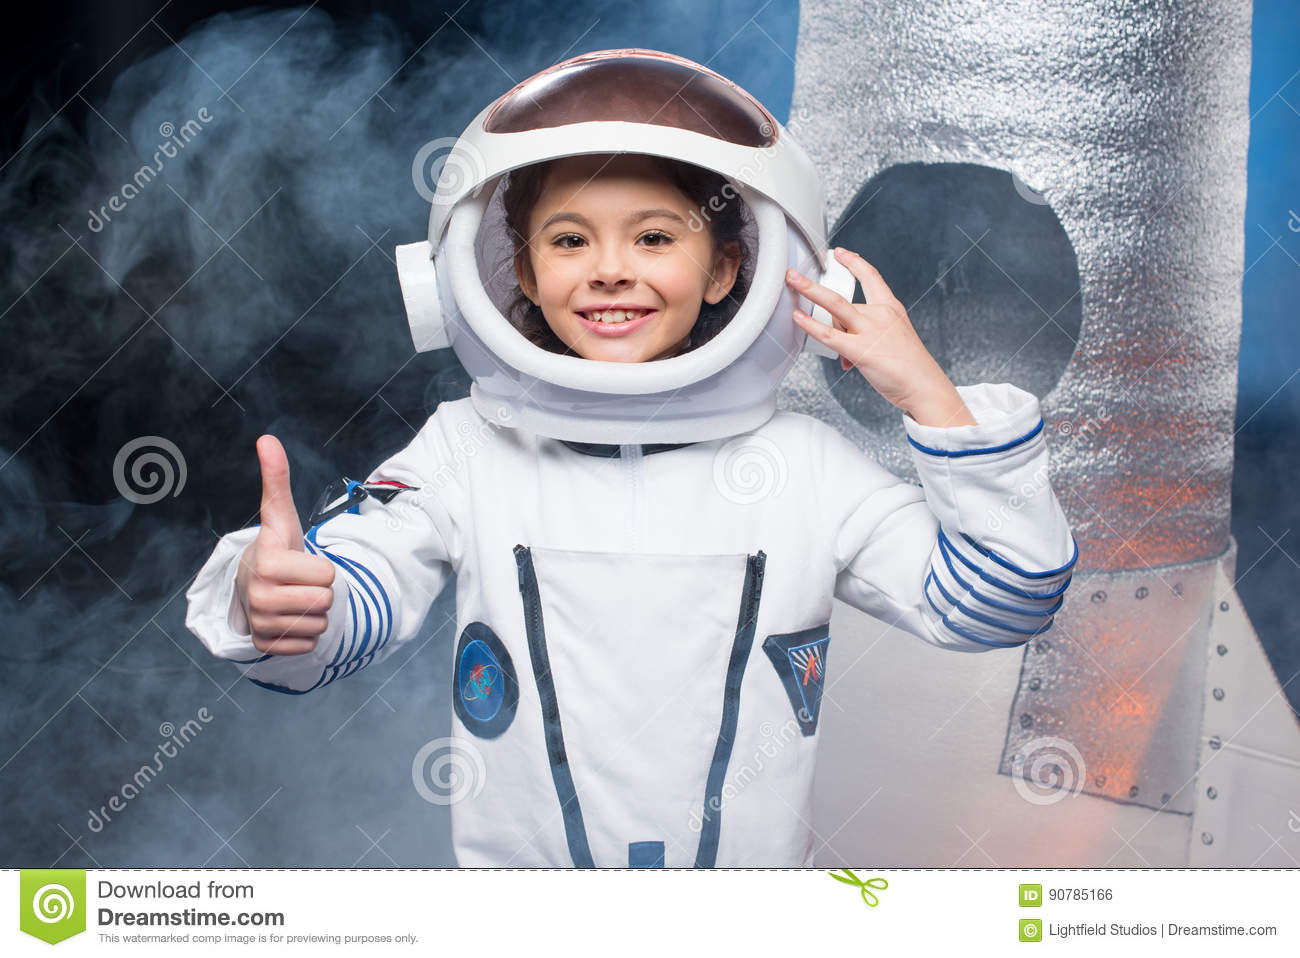 https://thumbs.dreamstime.com/z/girl-astronaut-costume-cute-little-showing-thumb-up-smiling-camera-90785166.jpg